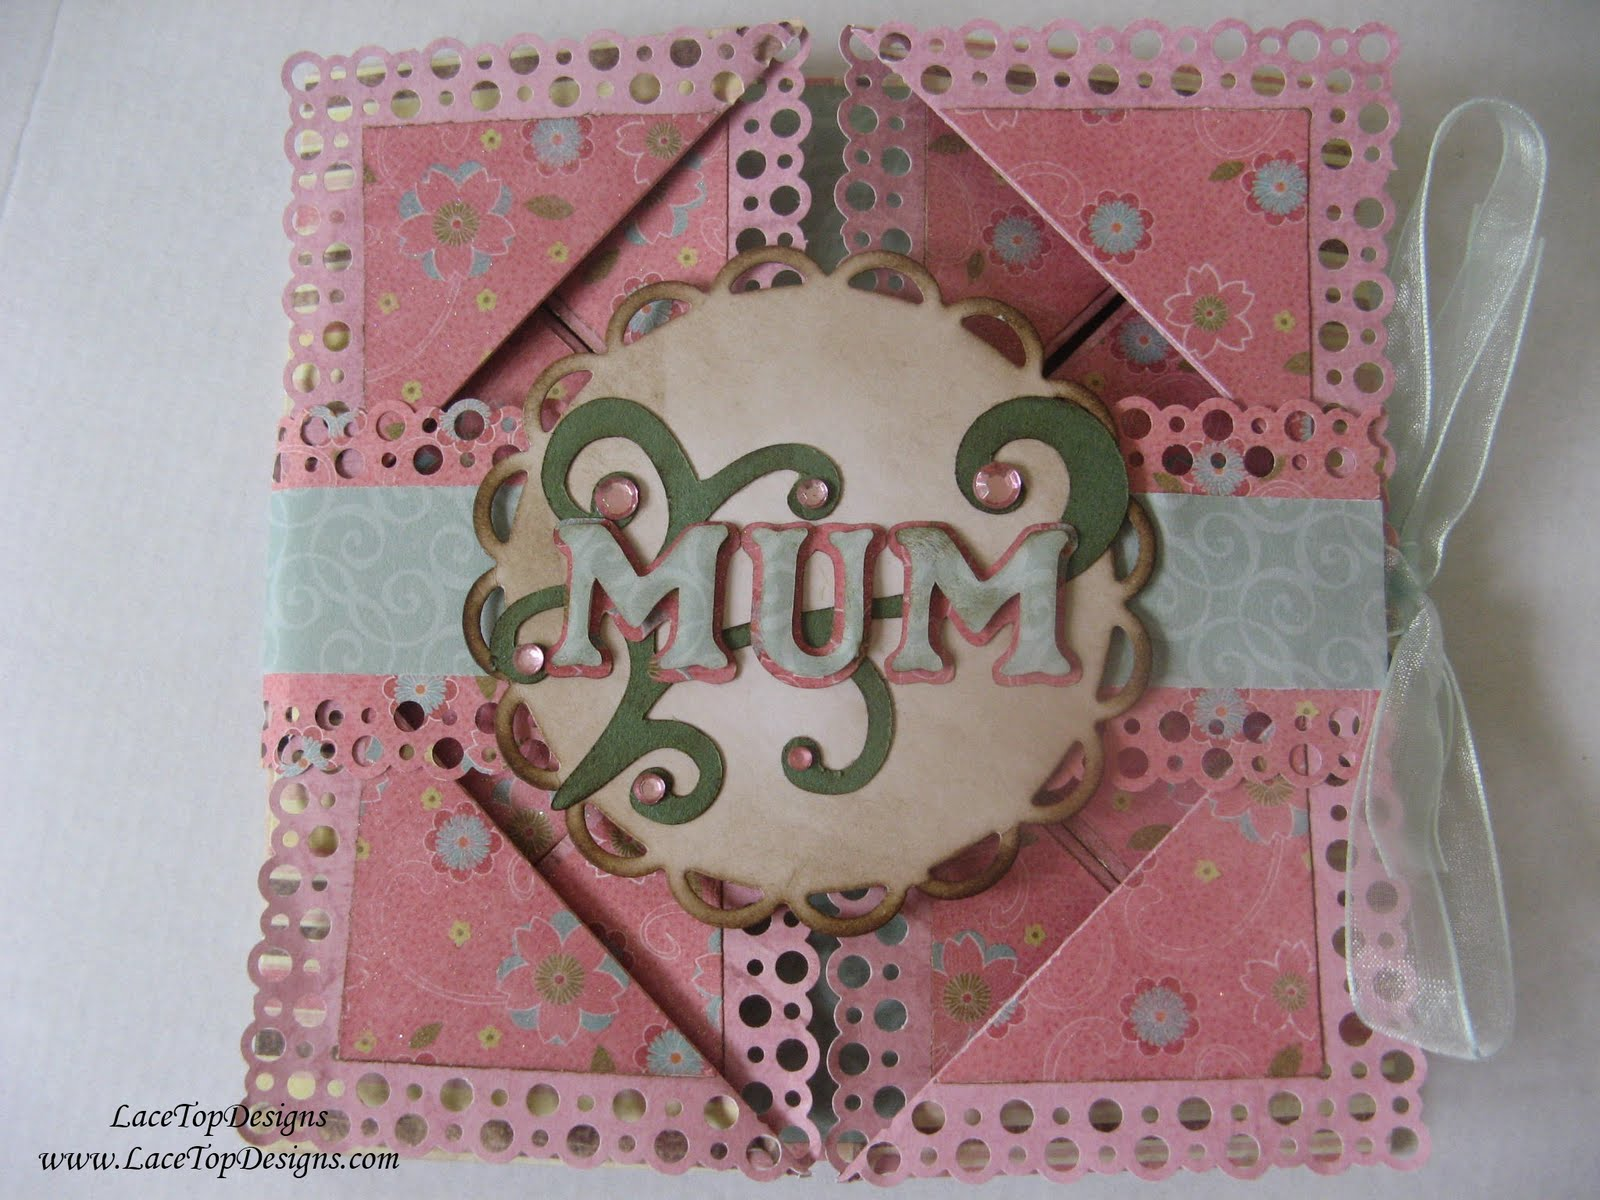 LaceTopDesigns August 2011 – 60th Birthday Card Mum